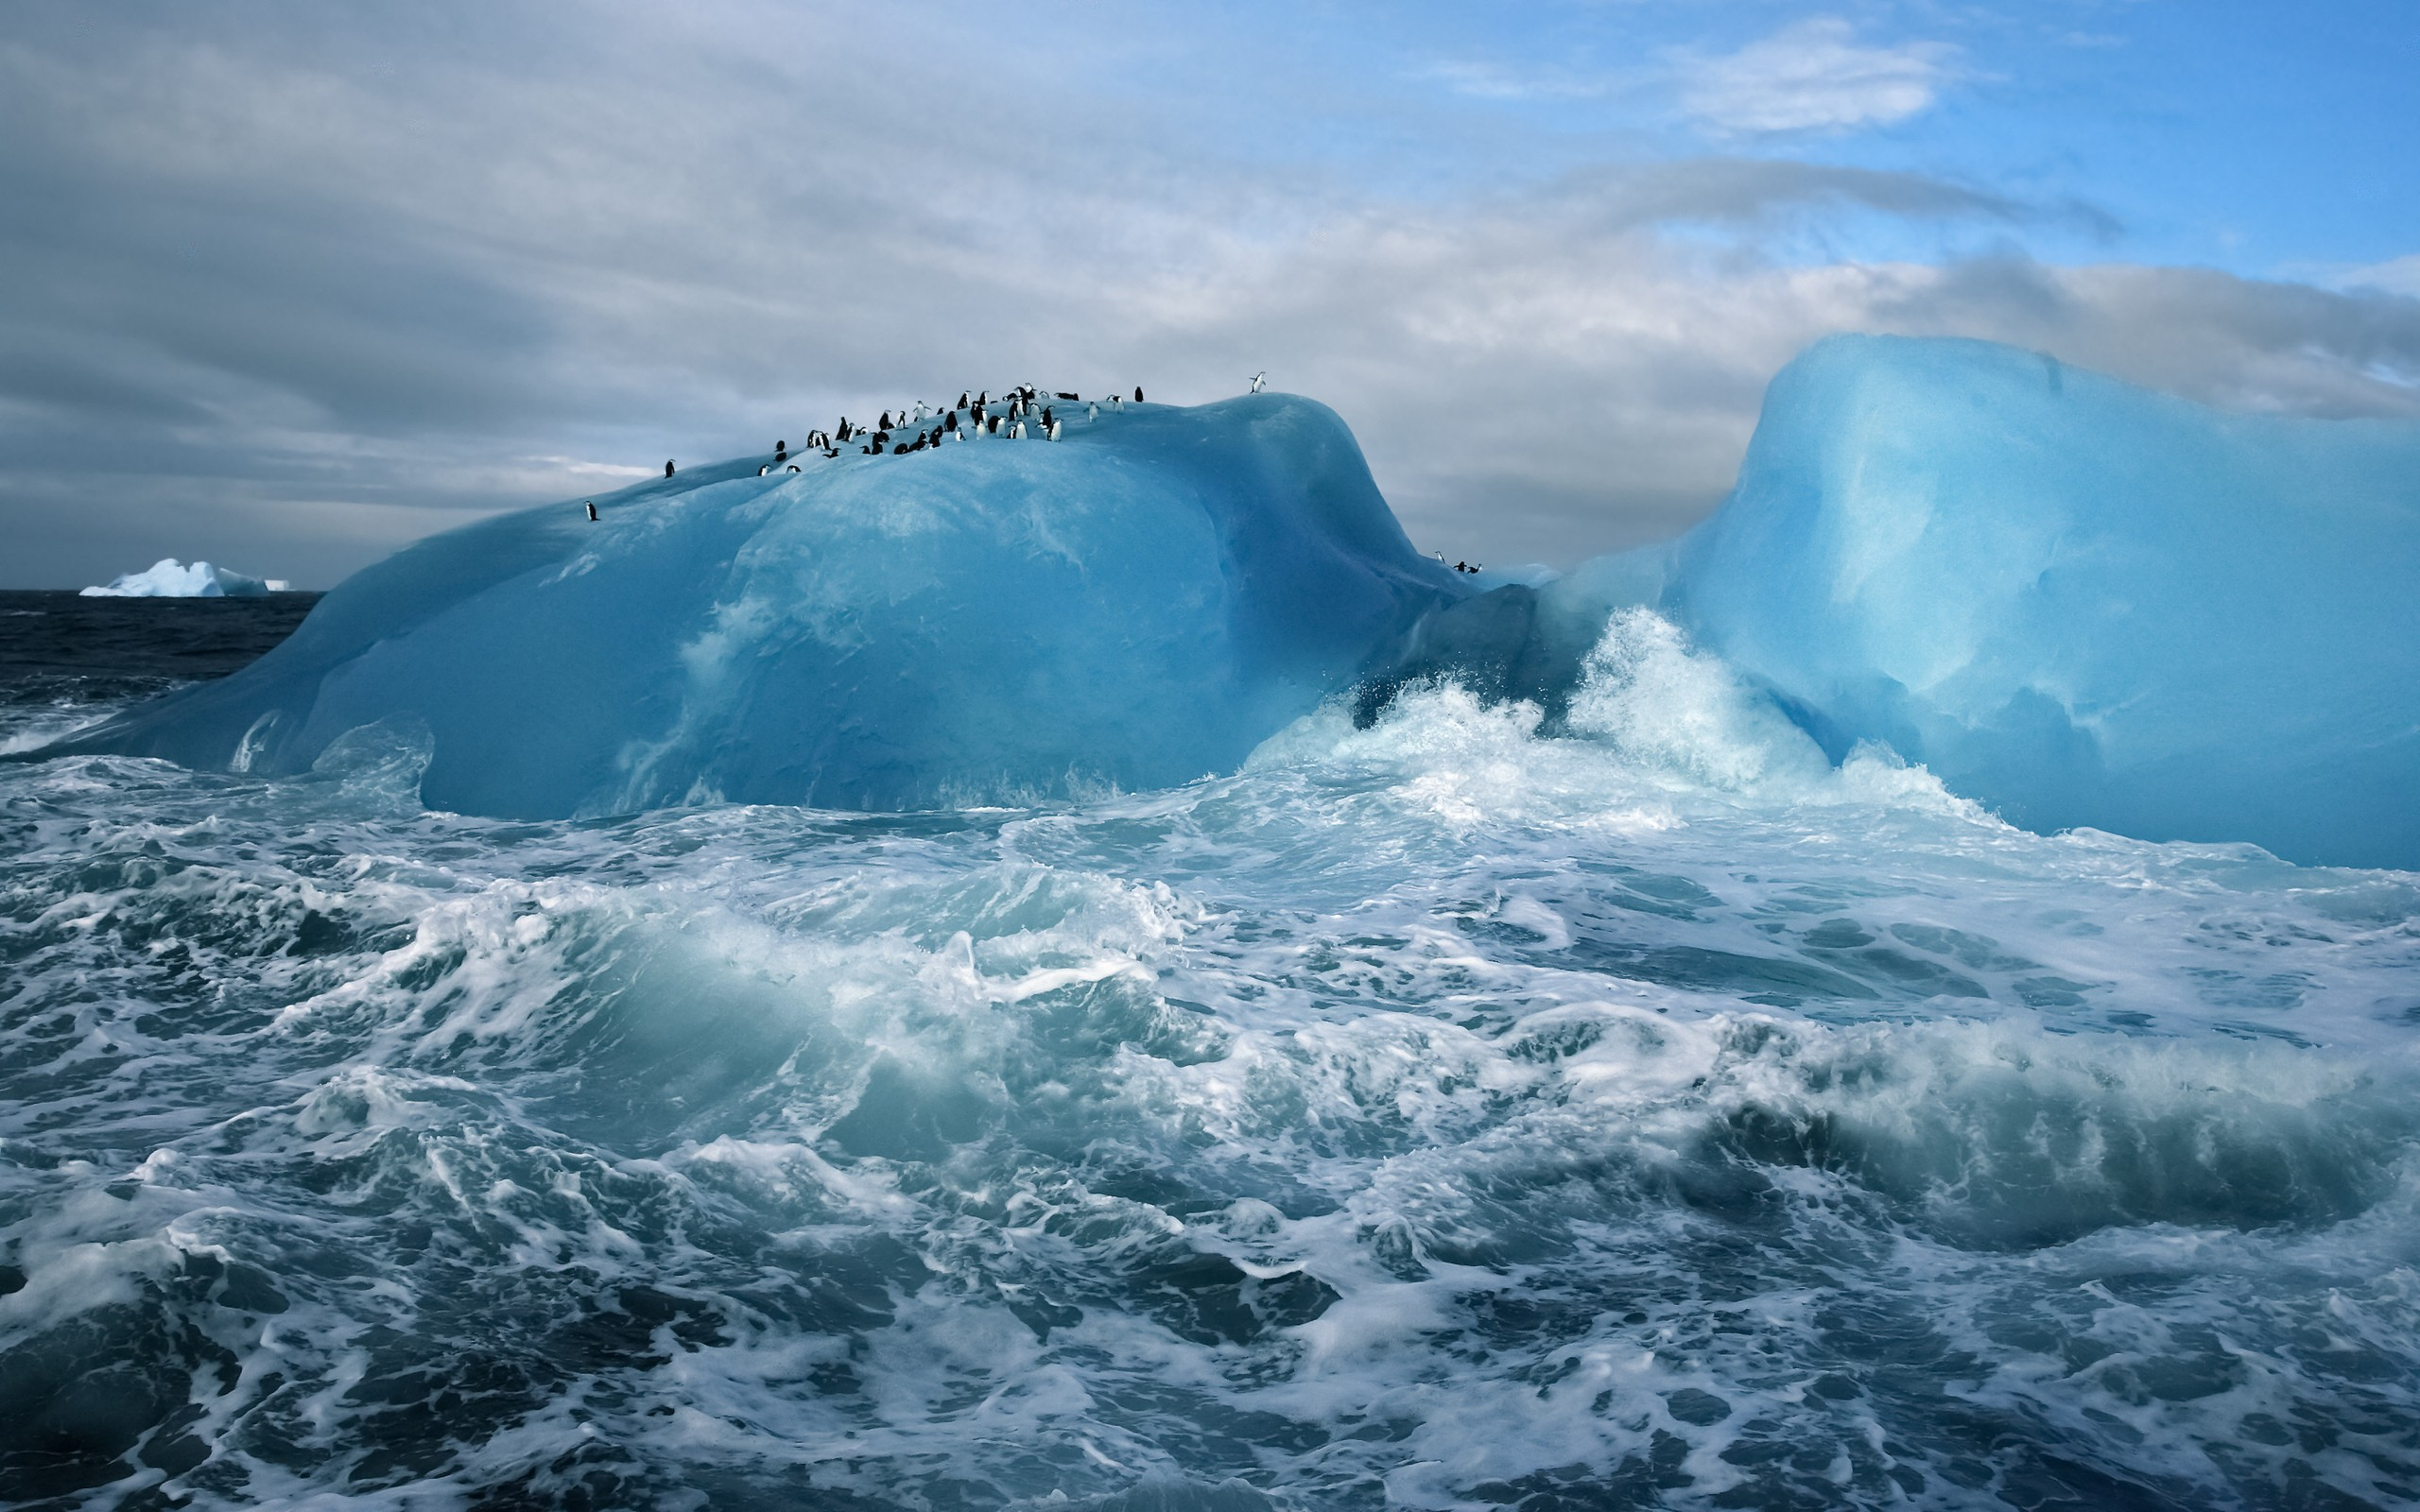 General 2560x1600 nature landscape sea waves Antarctica iceberg glaciers animals penguins snow